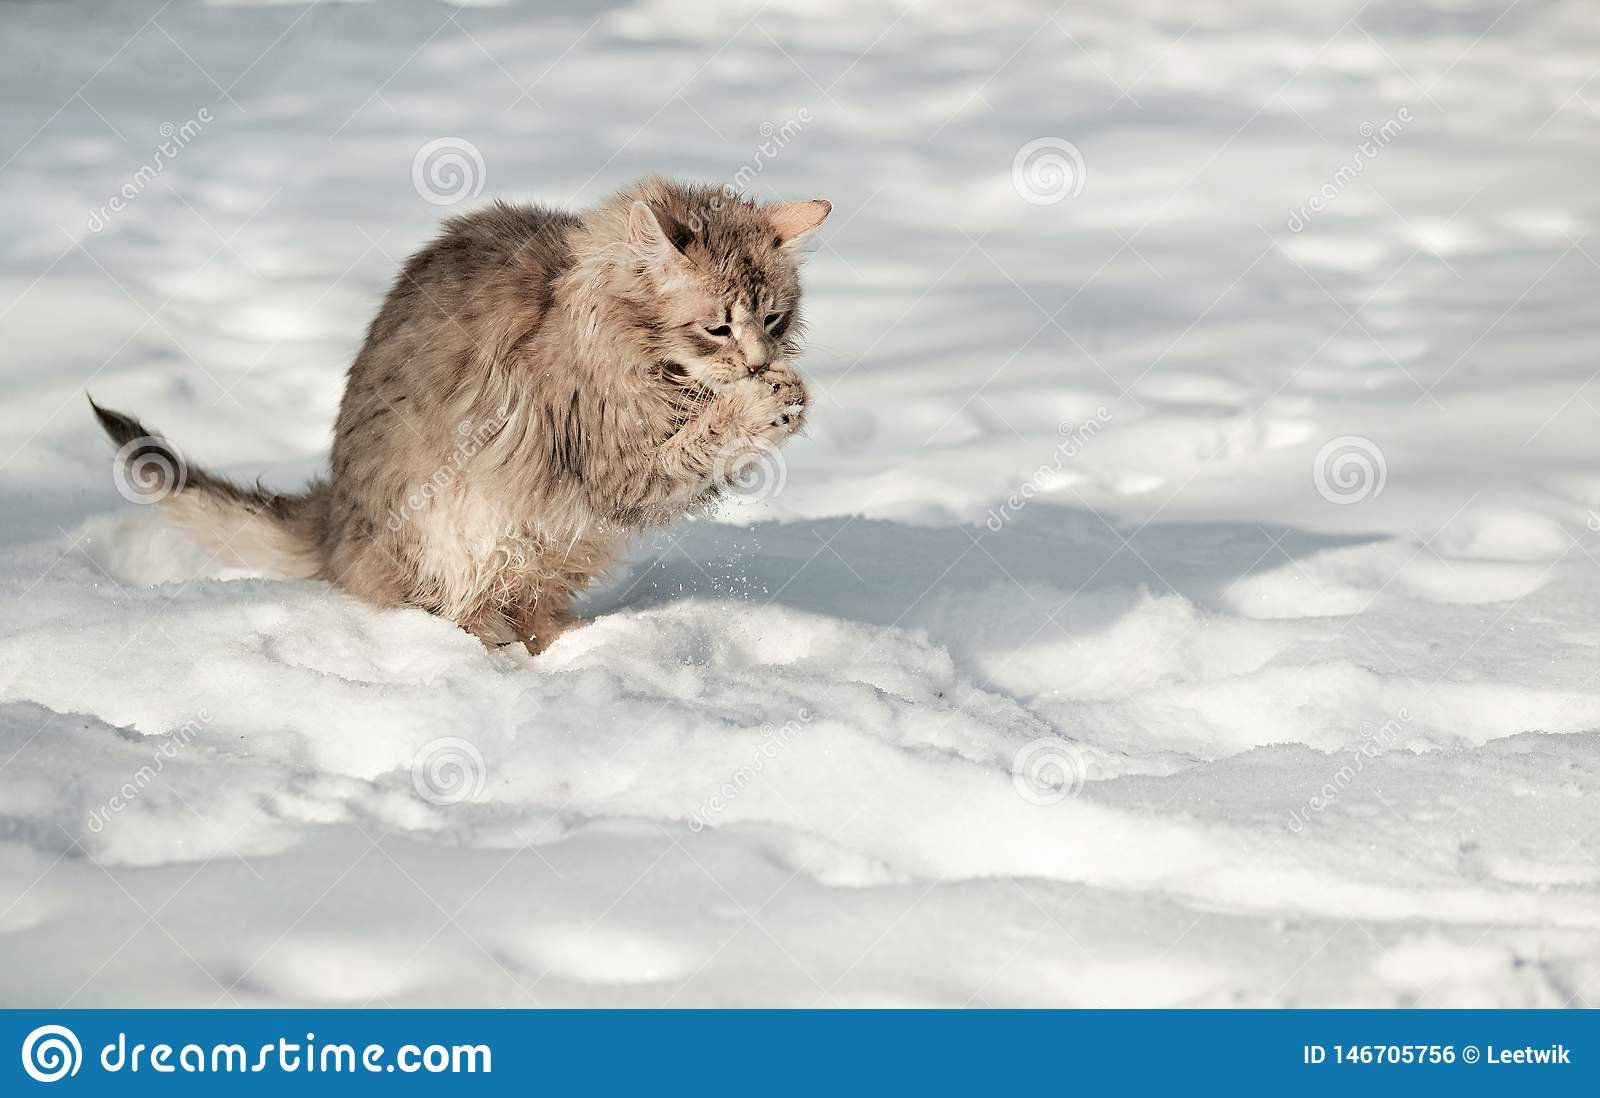 Young fluffy gray cat eats snow